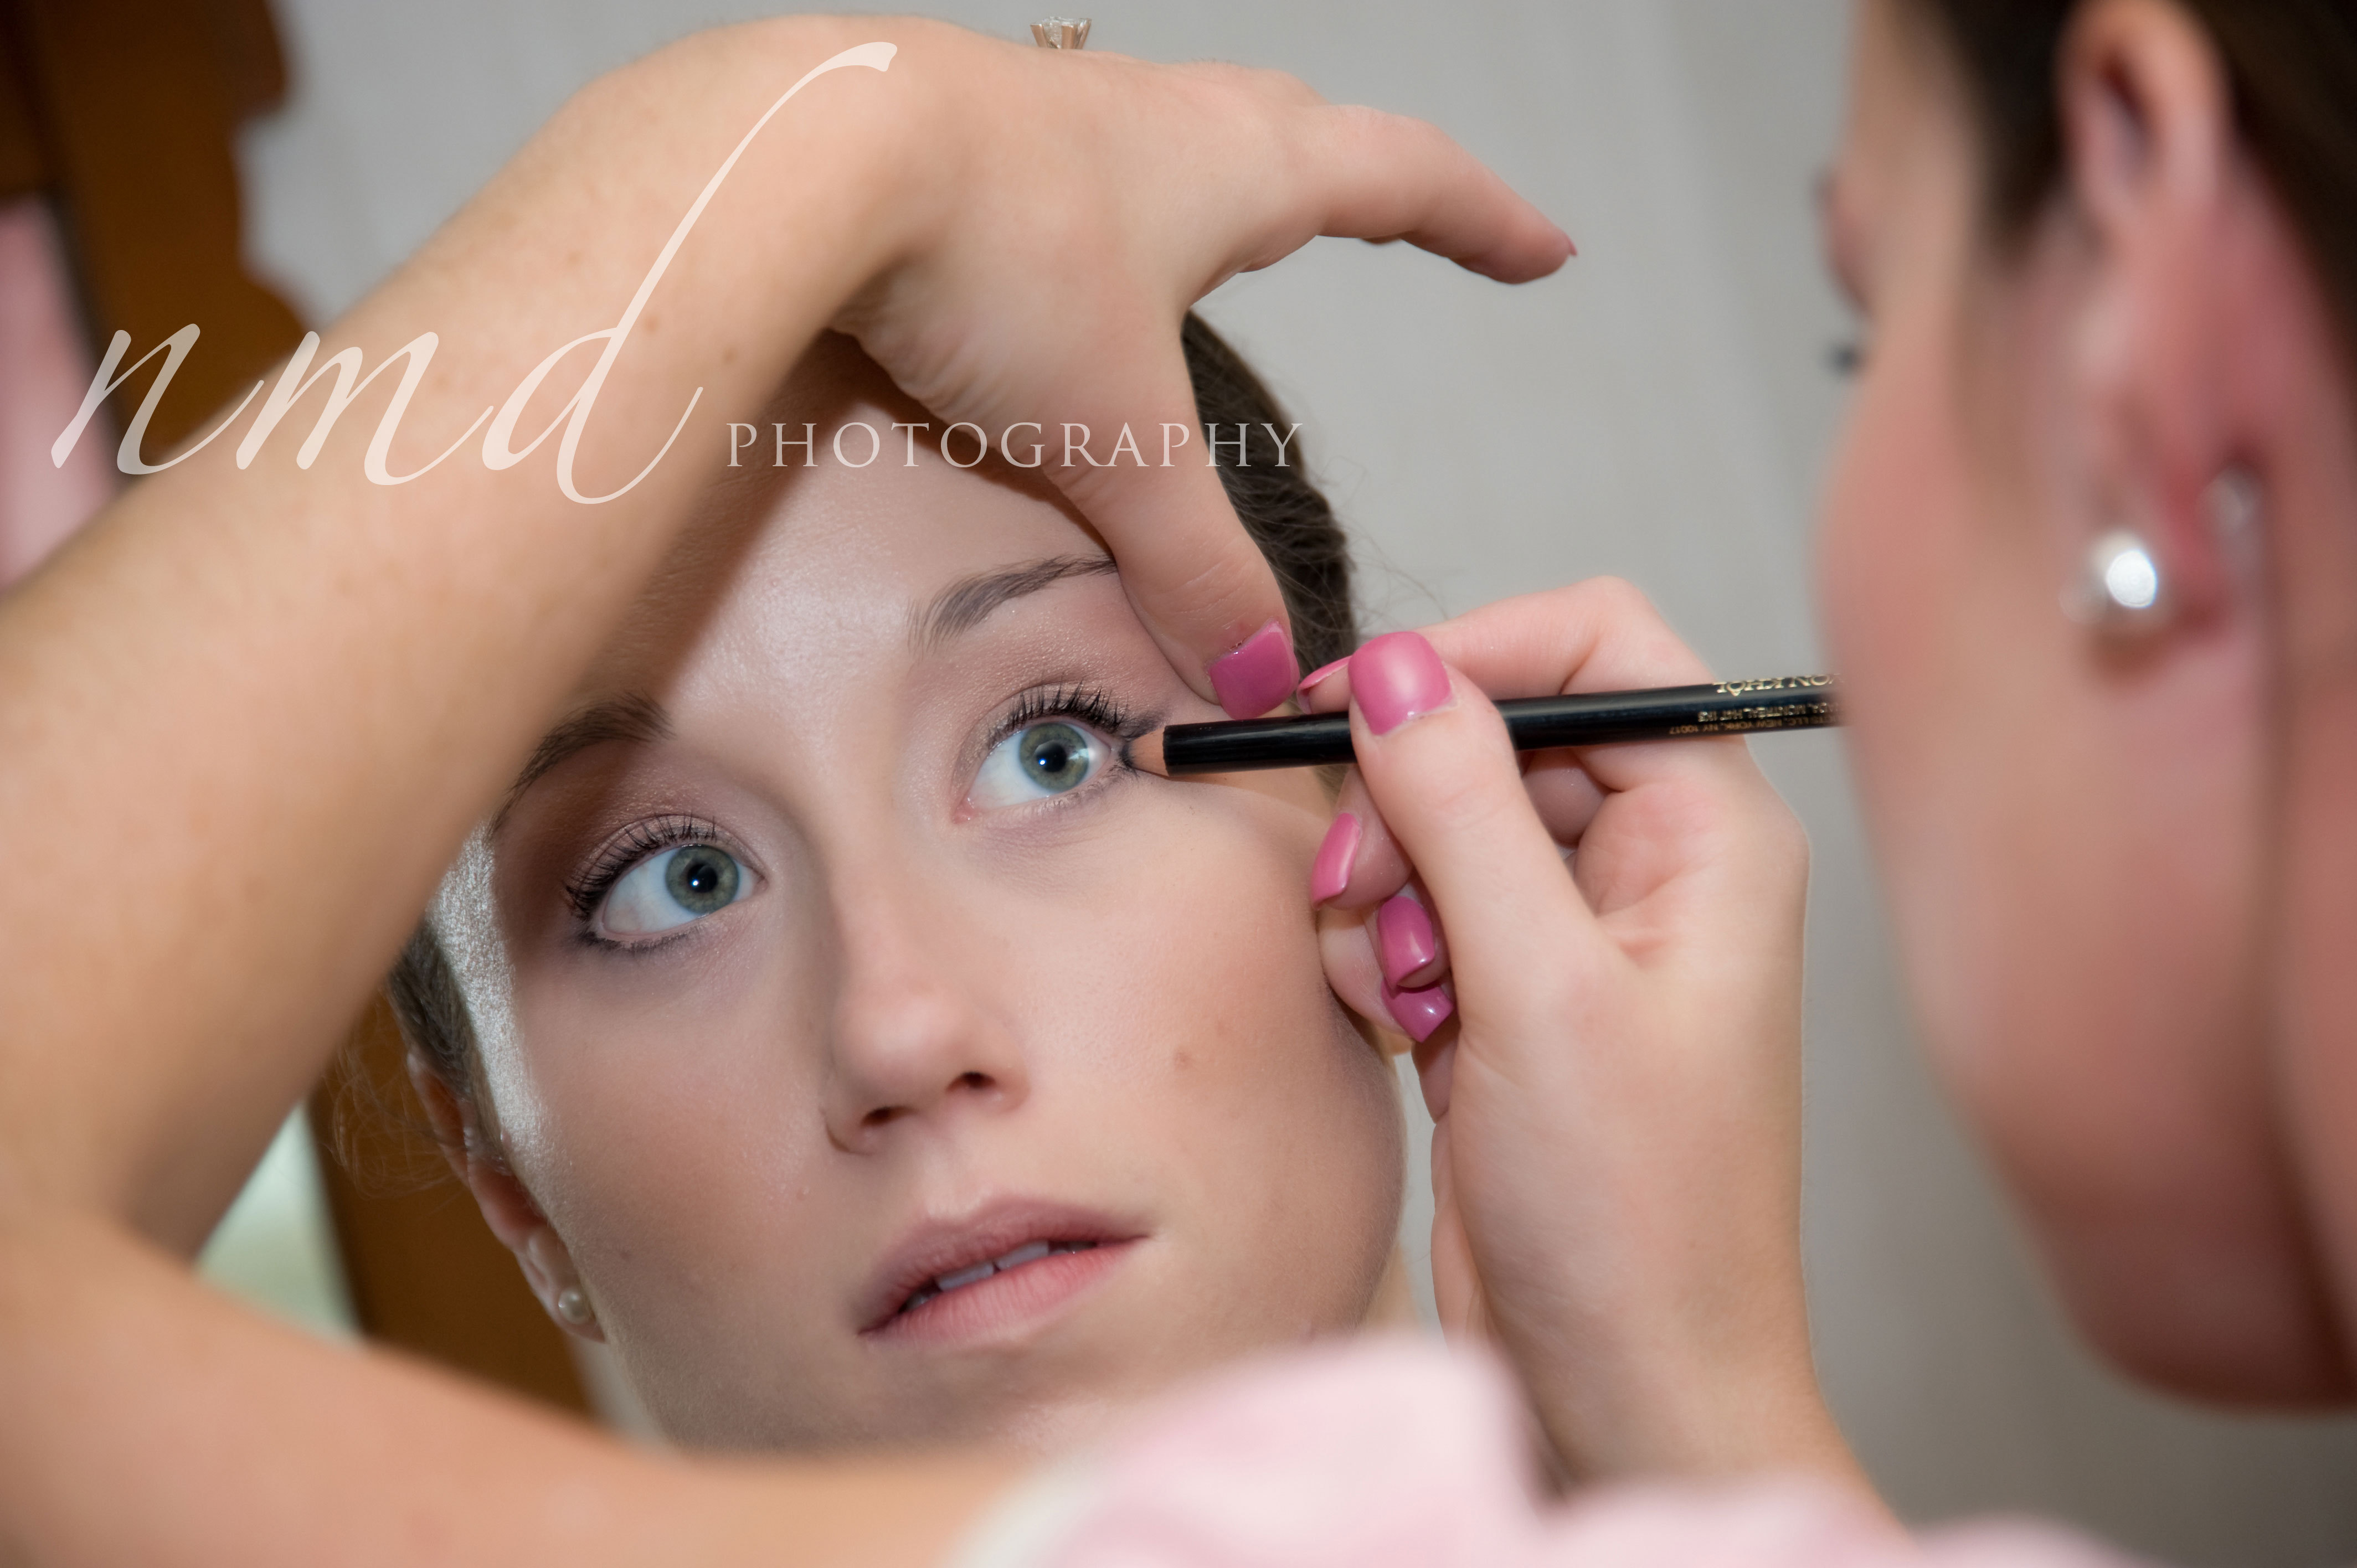 Beauty, Makeup, Preparation, Nmd photography